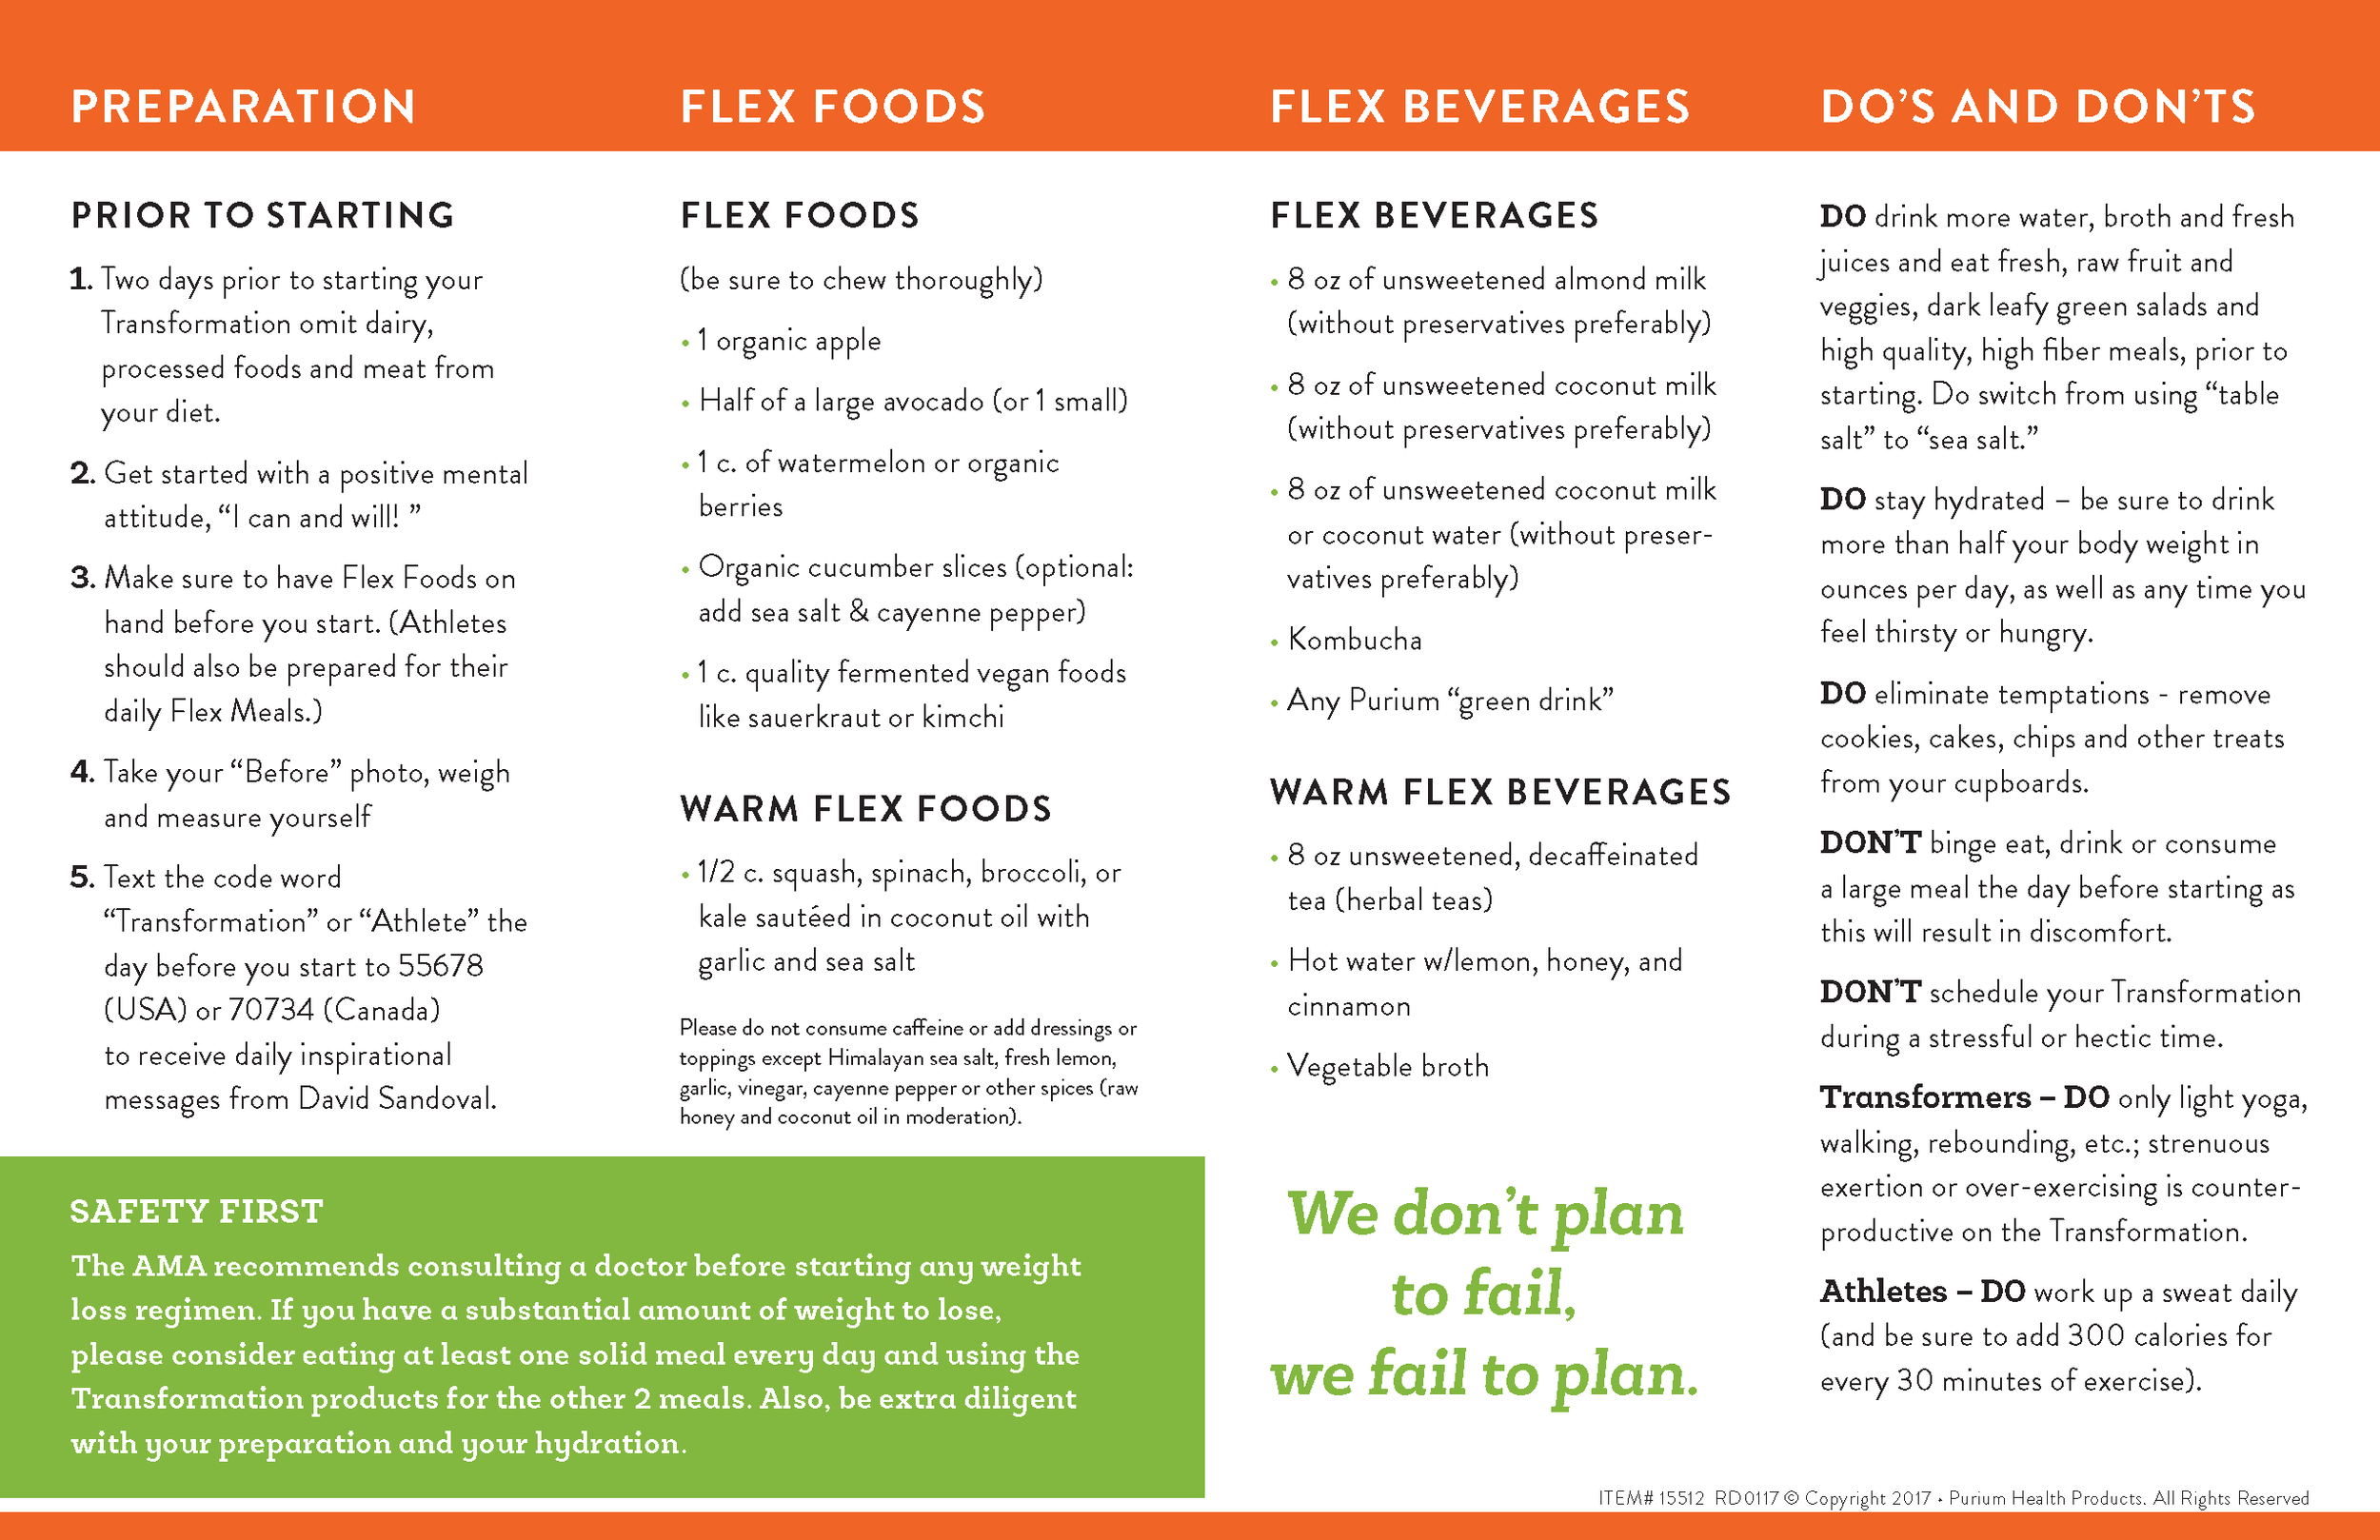 (There's a bigger list of Flex Foods you can eat, don't worry! Hit me up if you want that complete list)